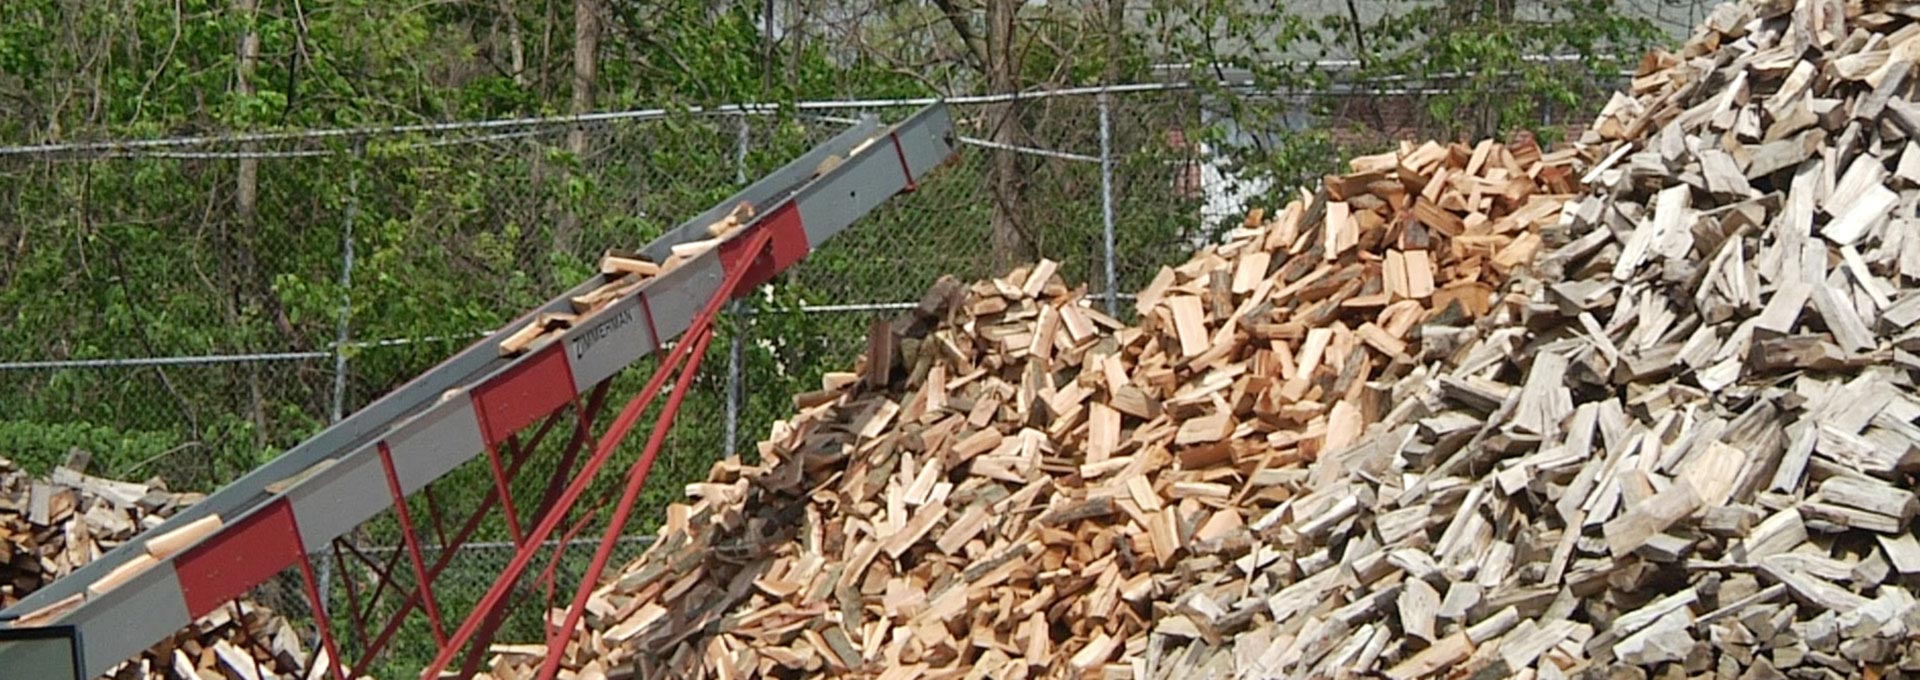 Chips Tree Service Inc Newtown Square Firewood For Sale Pa Newtown Square Firewood For Sale Pennsylvania Newtown Square Pa Firewood For Sale Newtown Square Pennsylvania 19073 24 01